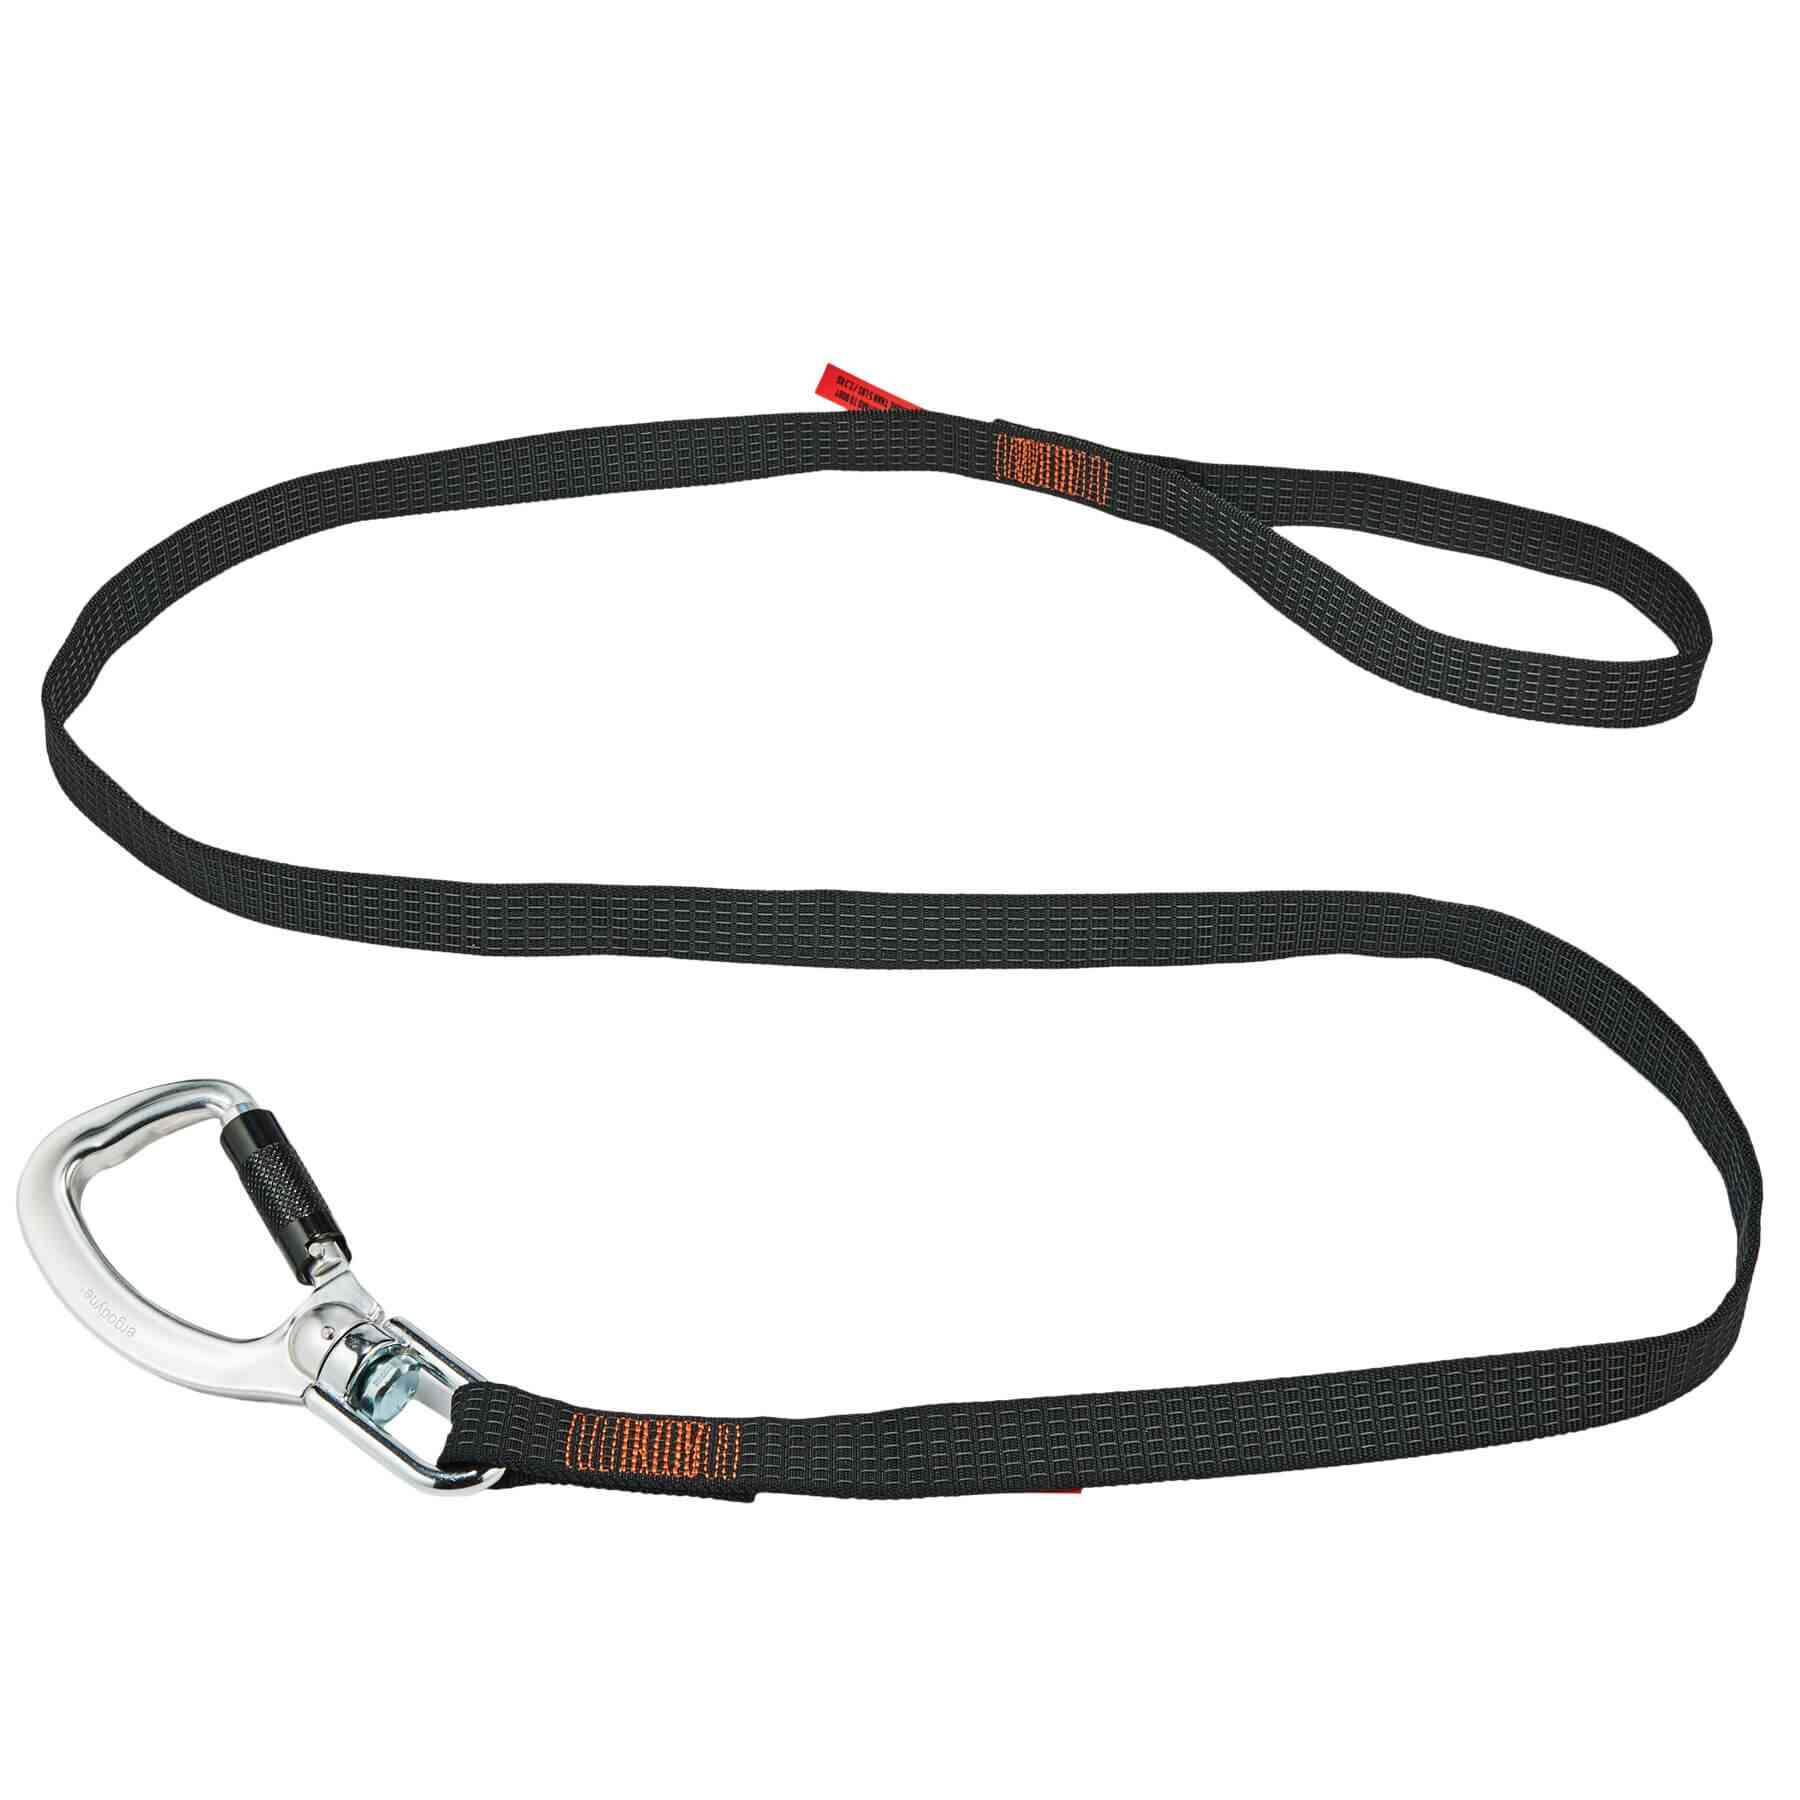 Squids 3129 Tool Lanyard Double-Locking Single Carabiner with Swivel - 40lbs